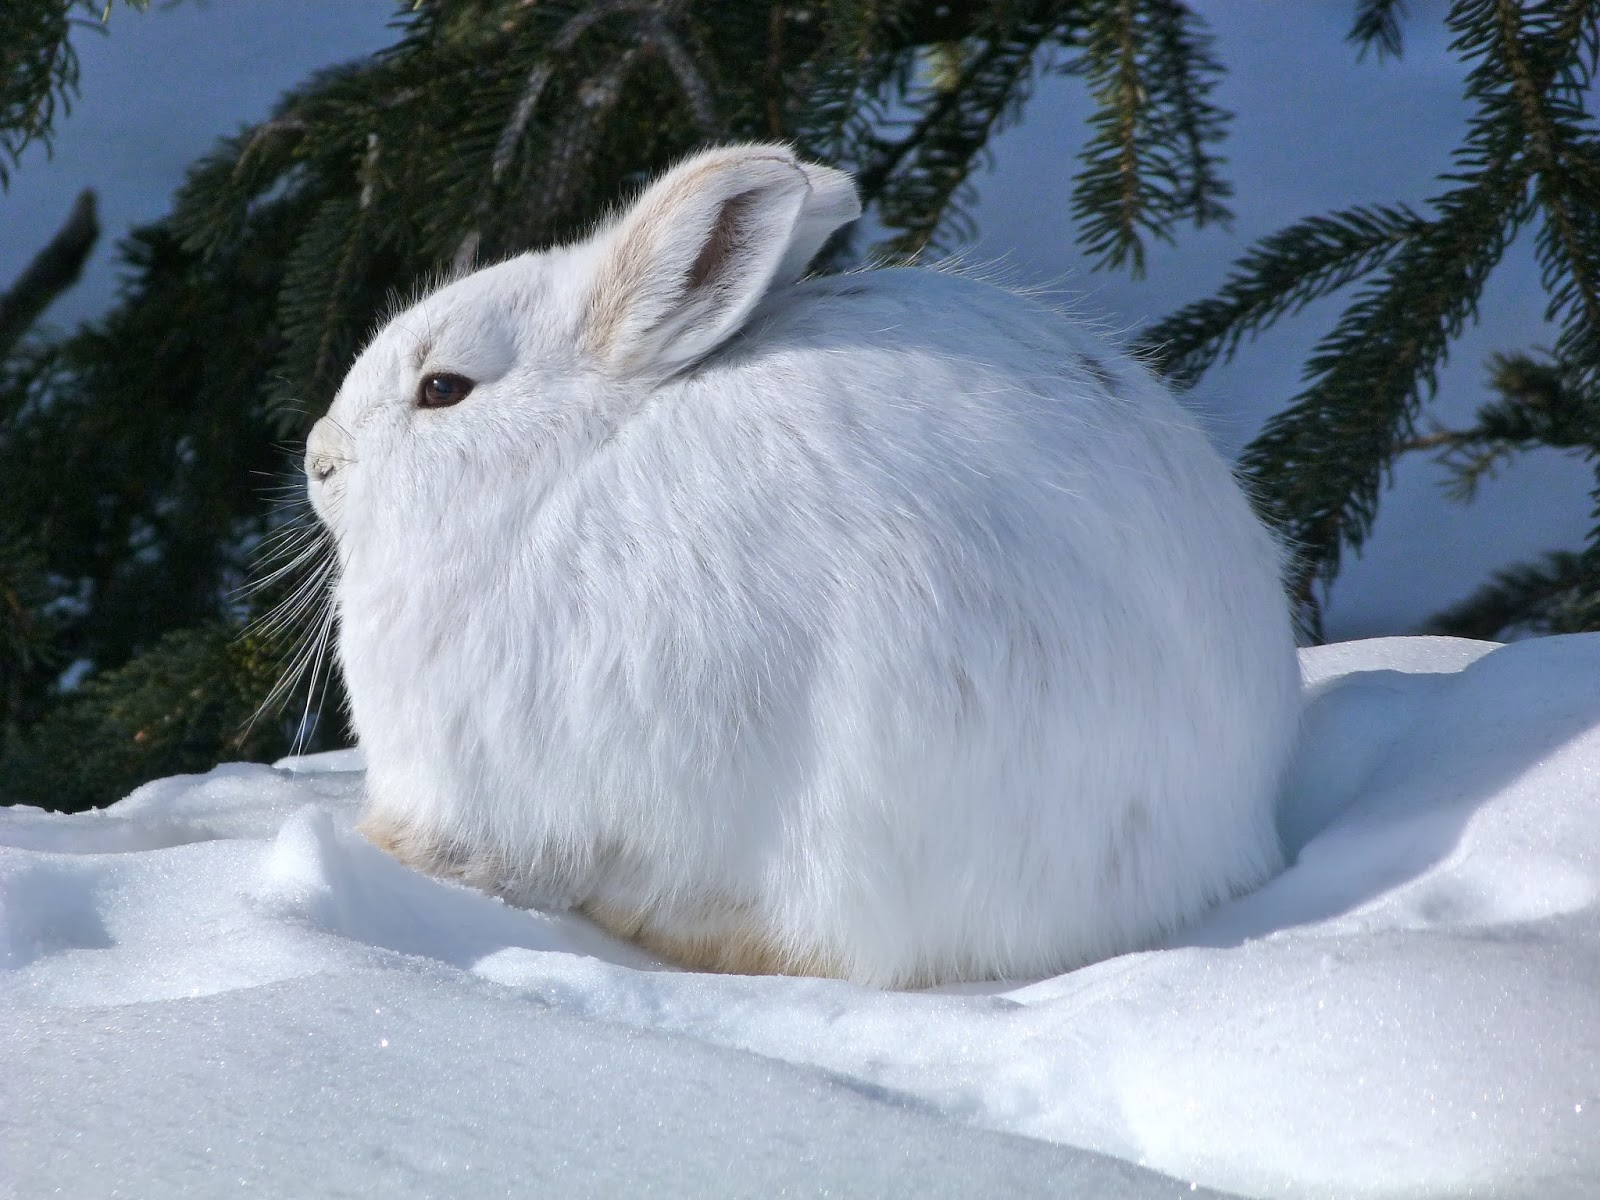 Snowshoe hare winter